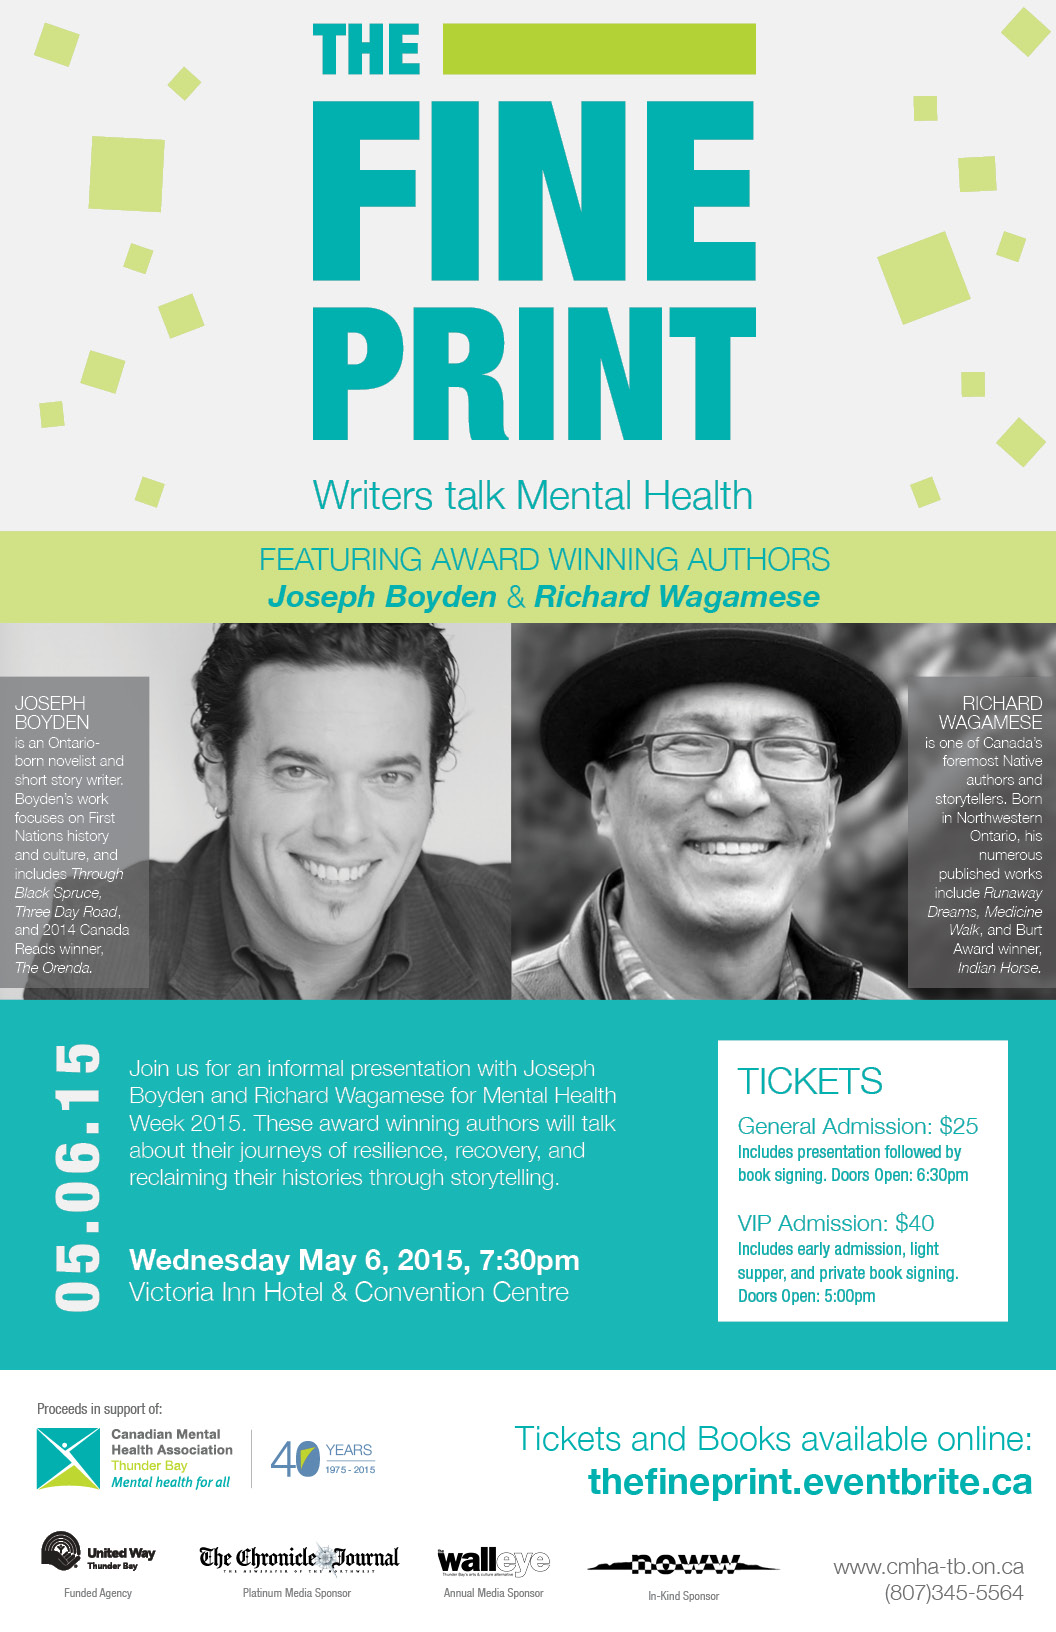 Mental Health Week 2015: The Fine Print: Writers Talk Mental Health (May 6, 2015. Thunder Bay)